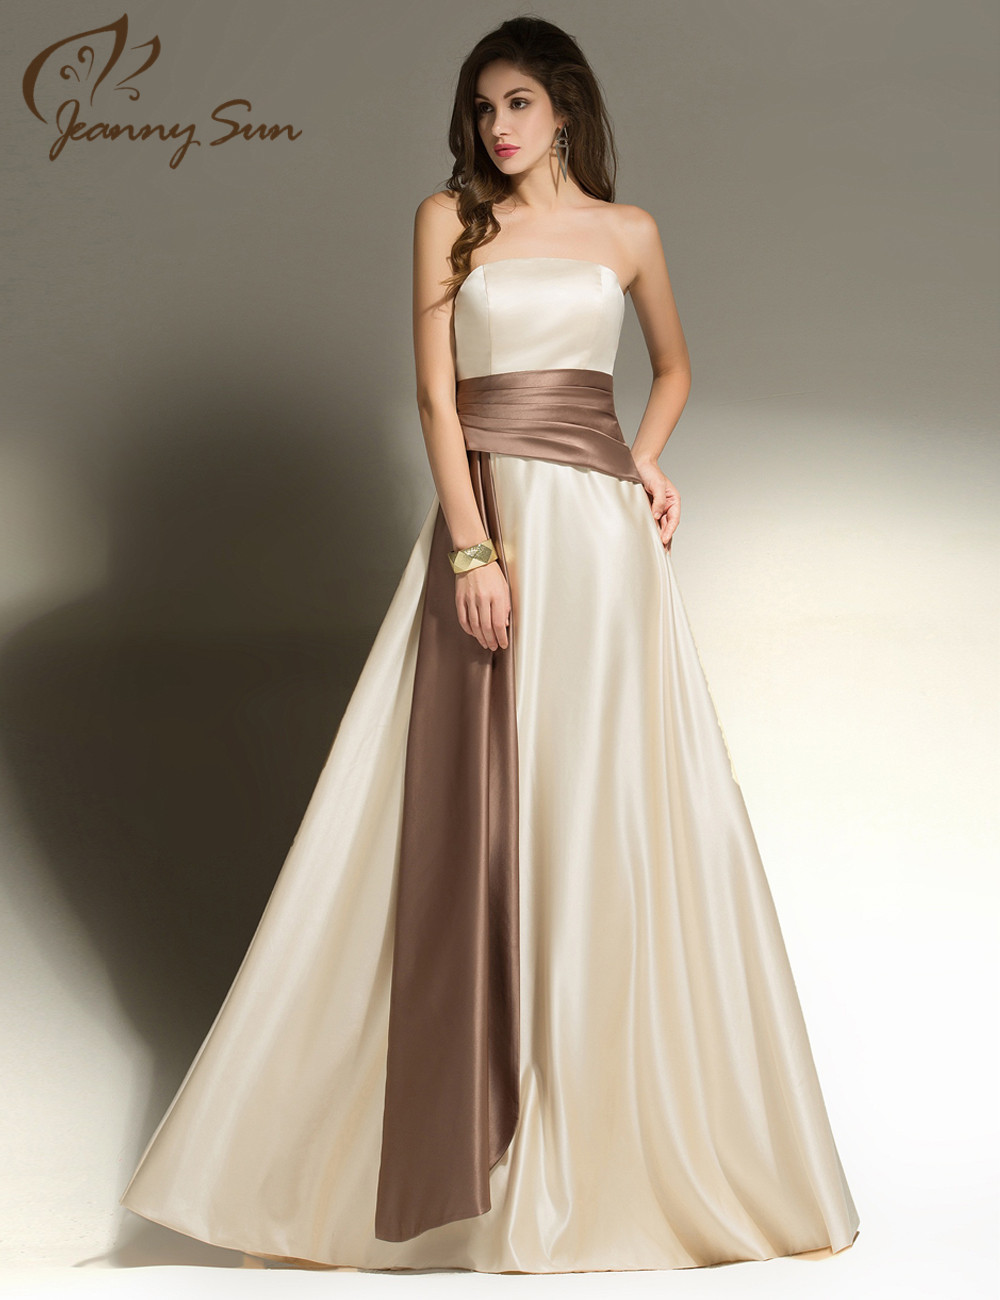 Online shop champagne long bridesmaid dresses satin scallop a line online shop champagne long bridesmaid dresses satin scallop a line floor length party dress with brown sash real images 100 js550 aliexpress mobile ombrellifo Gallery